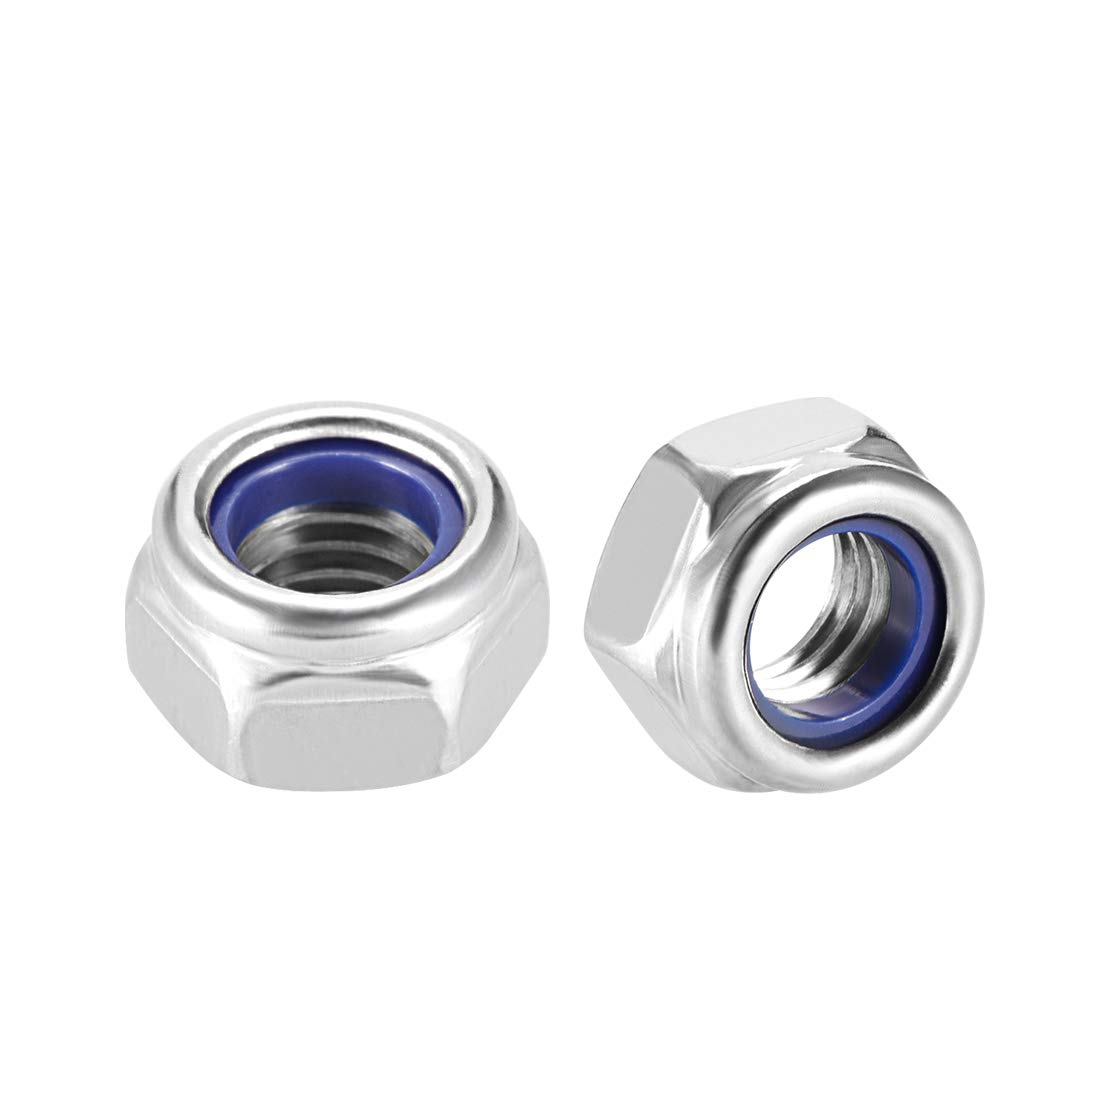 304 Stainless Steel Plain Finish uxcell M12 x 1.75mm Nylon Insert Hex Lock Nuts Pack of 6